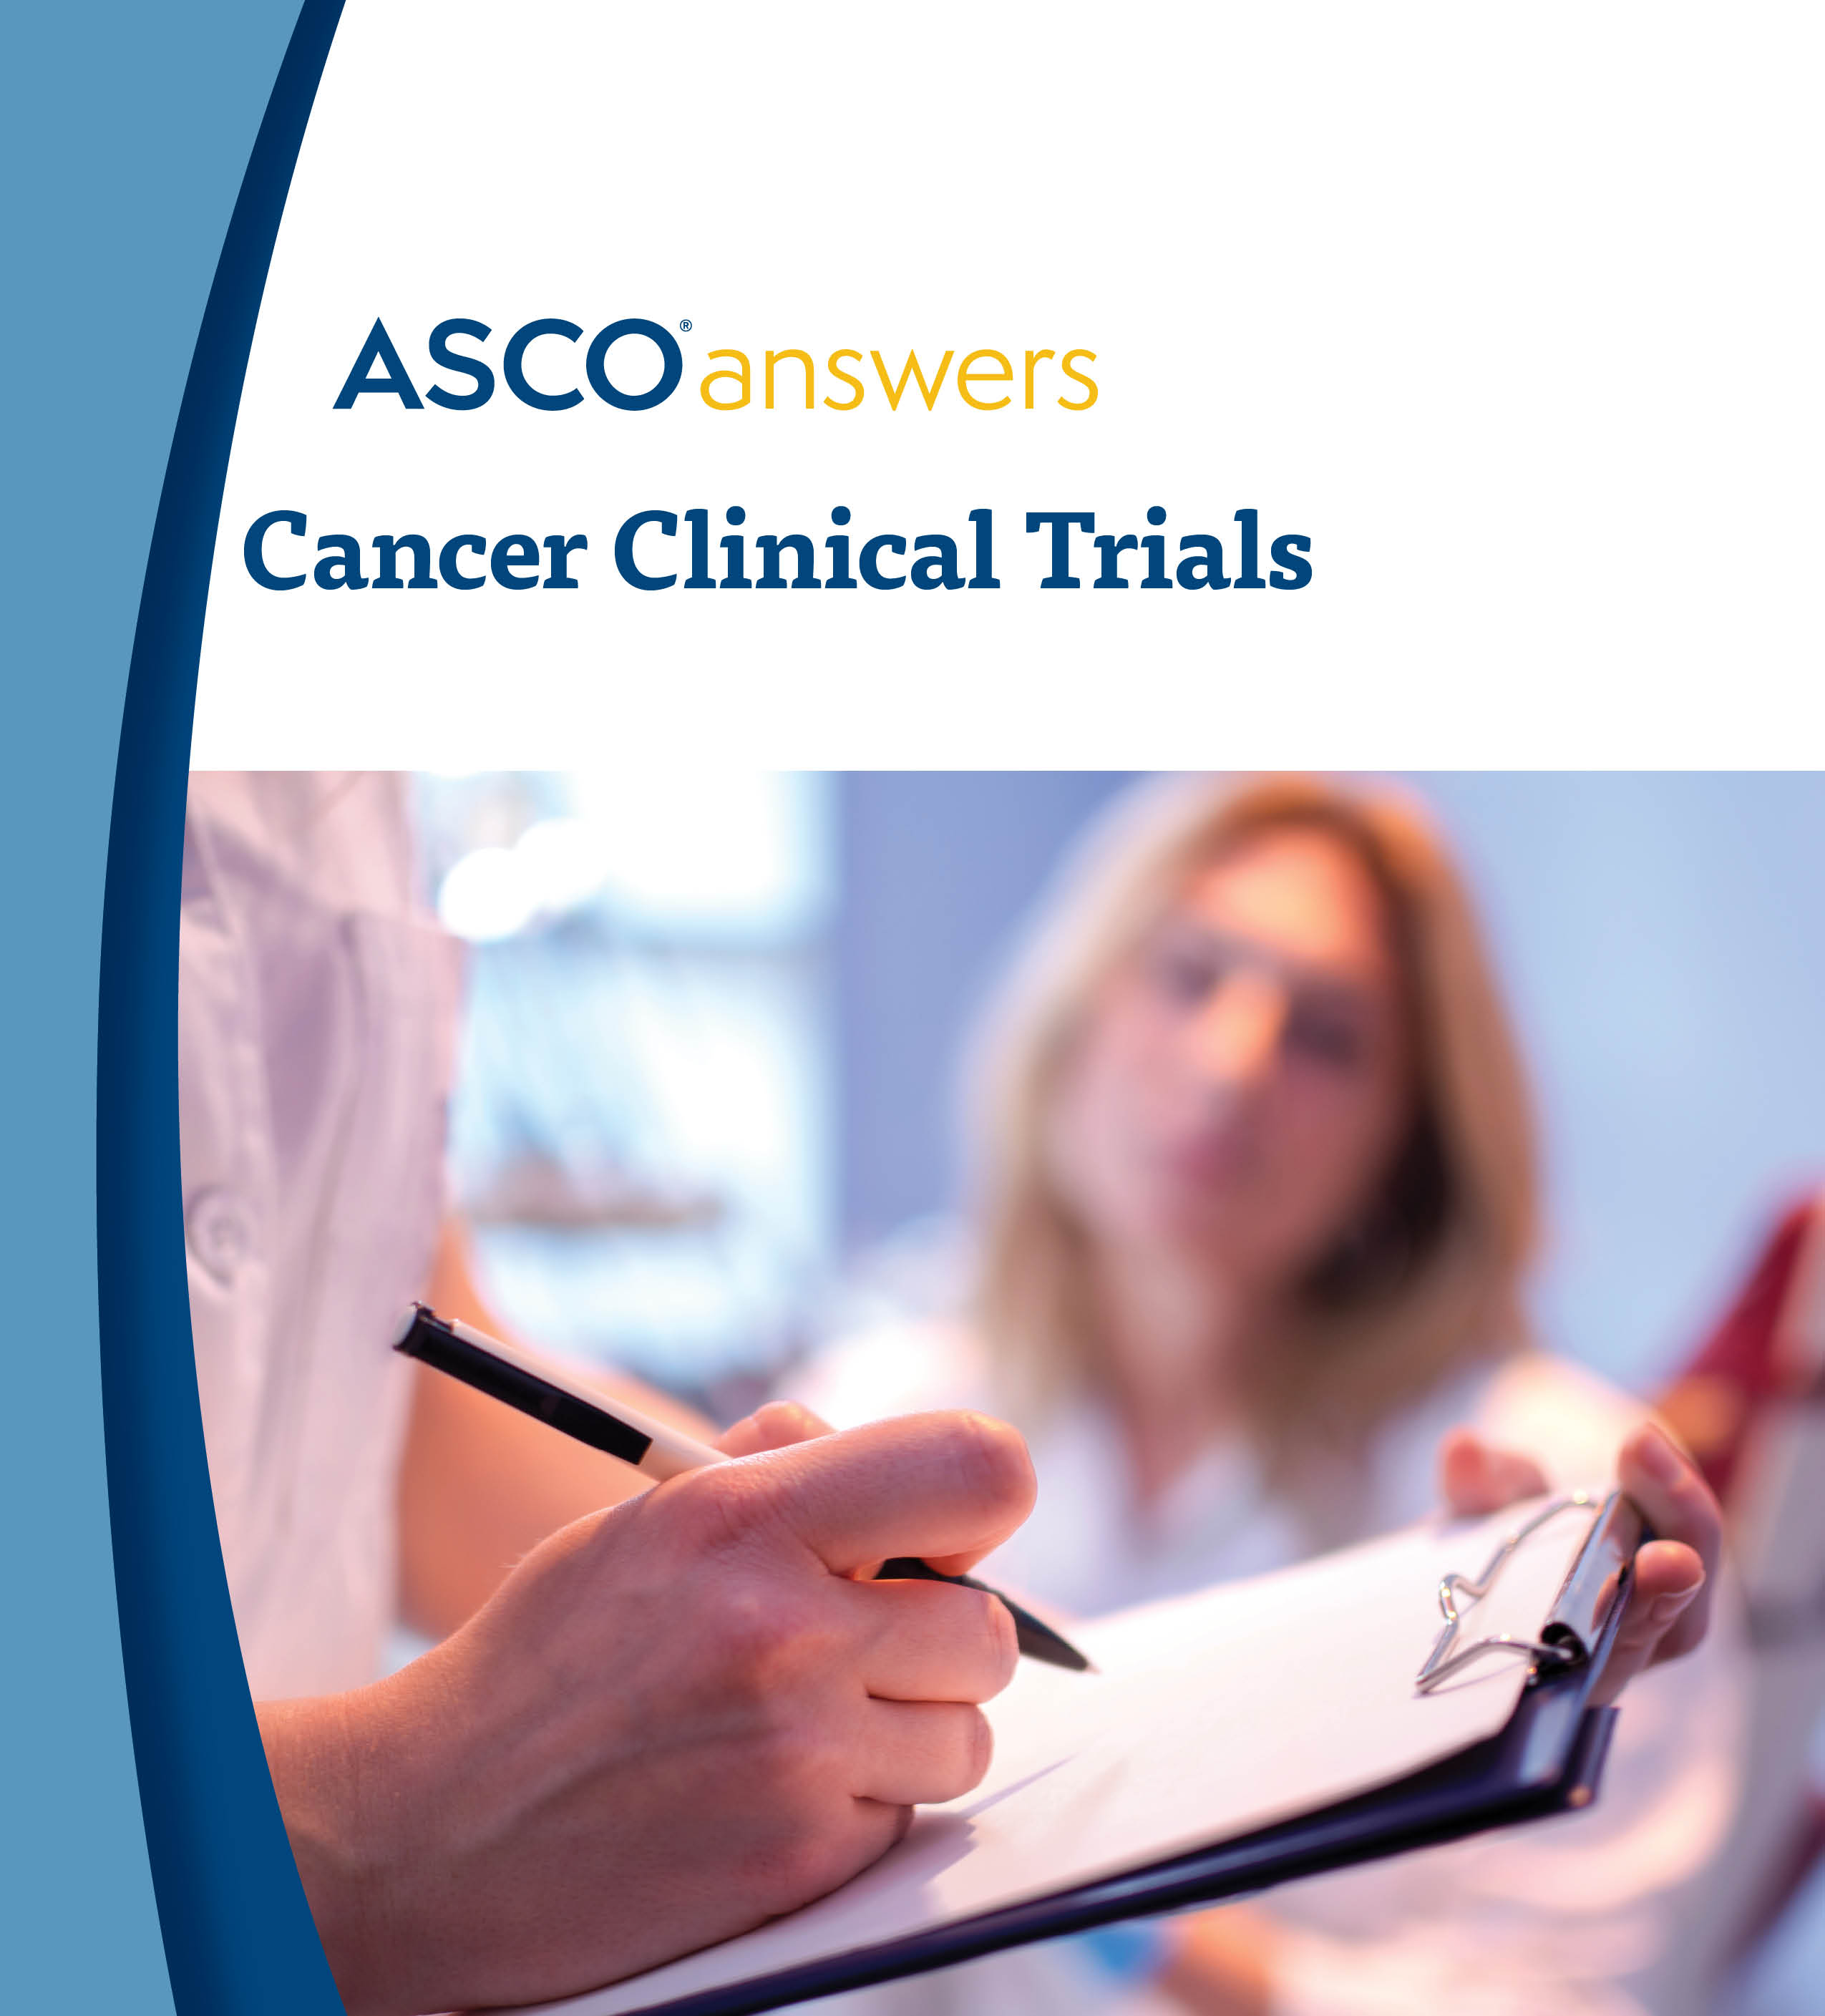 ASCO Answers: Cancer Clinical Trials